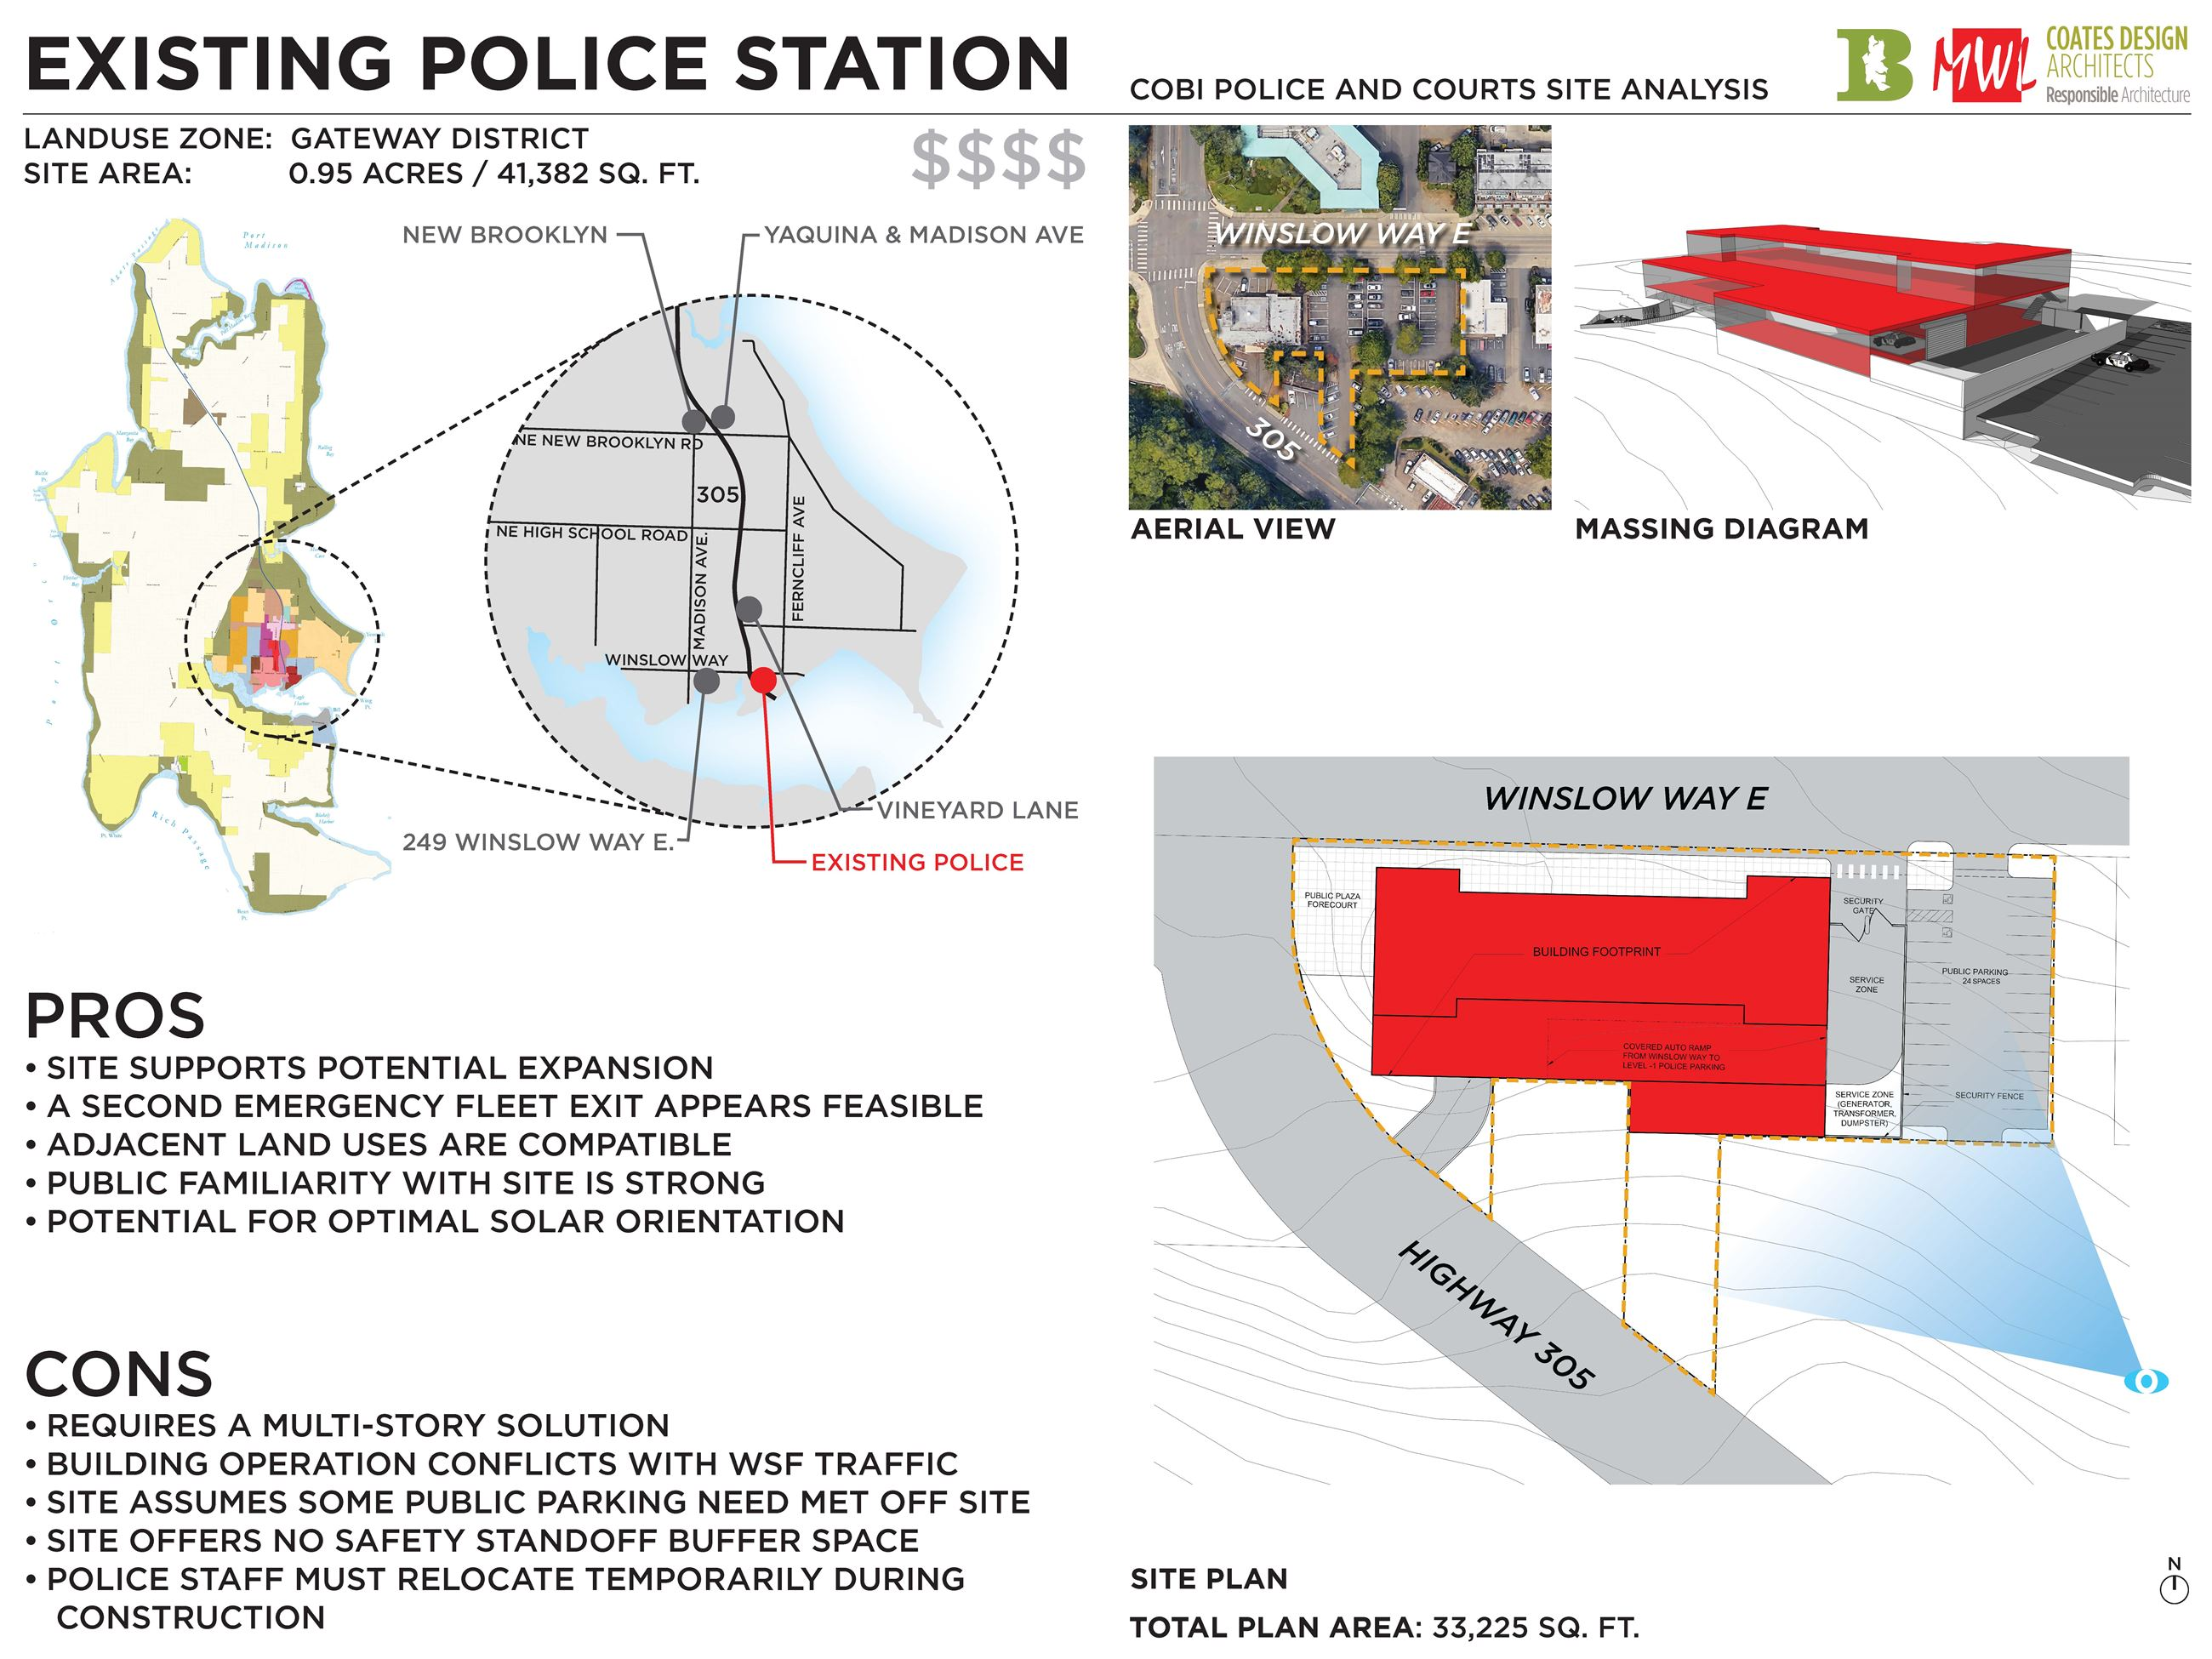 police station and municipal court planning bainbridge island in 2006 the webber study took a much closer look at the existing police station site in fact the purpose of the study was to determine if it is in fact